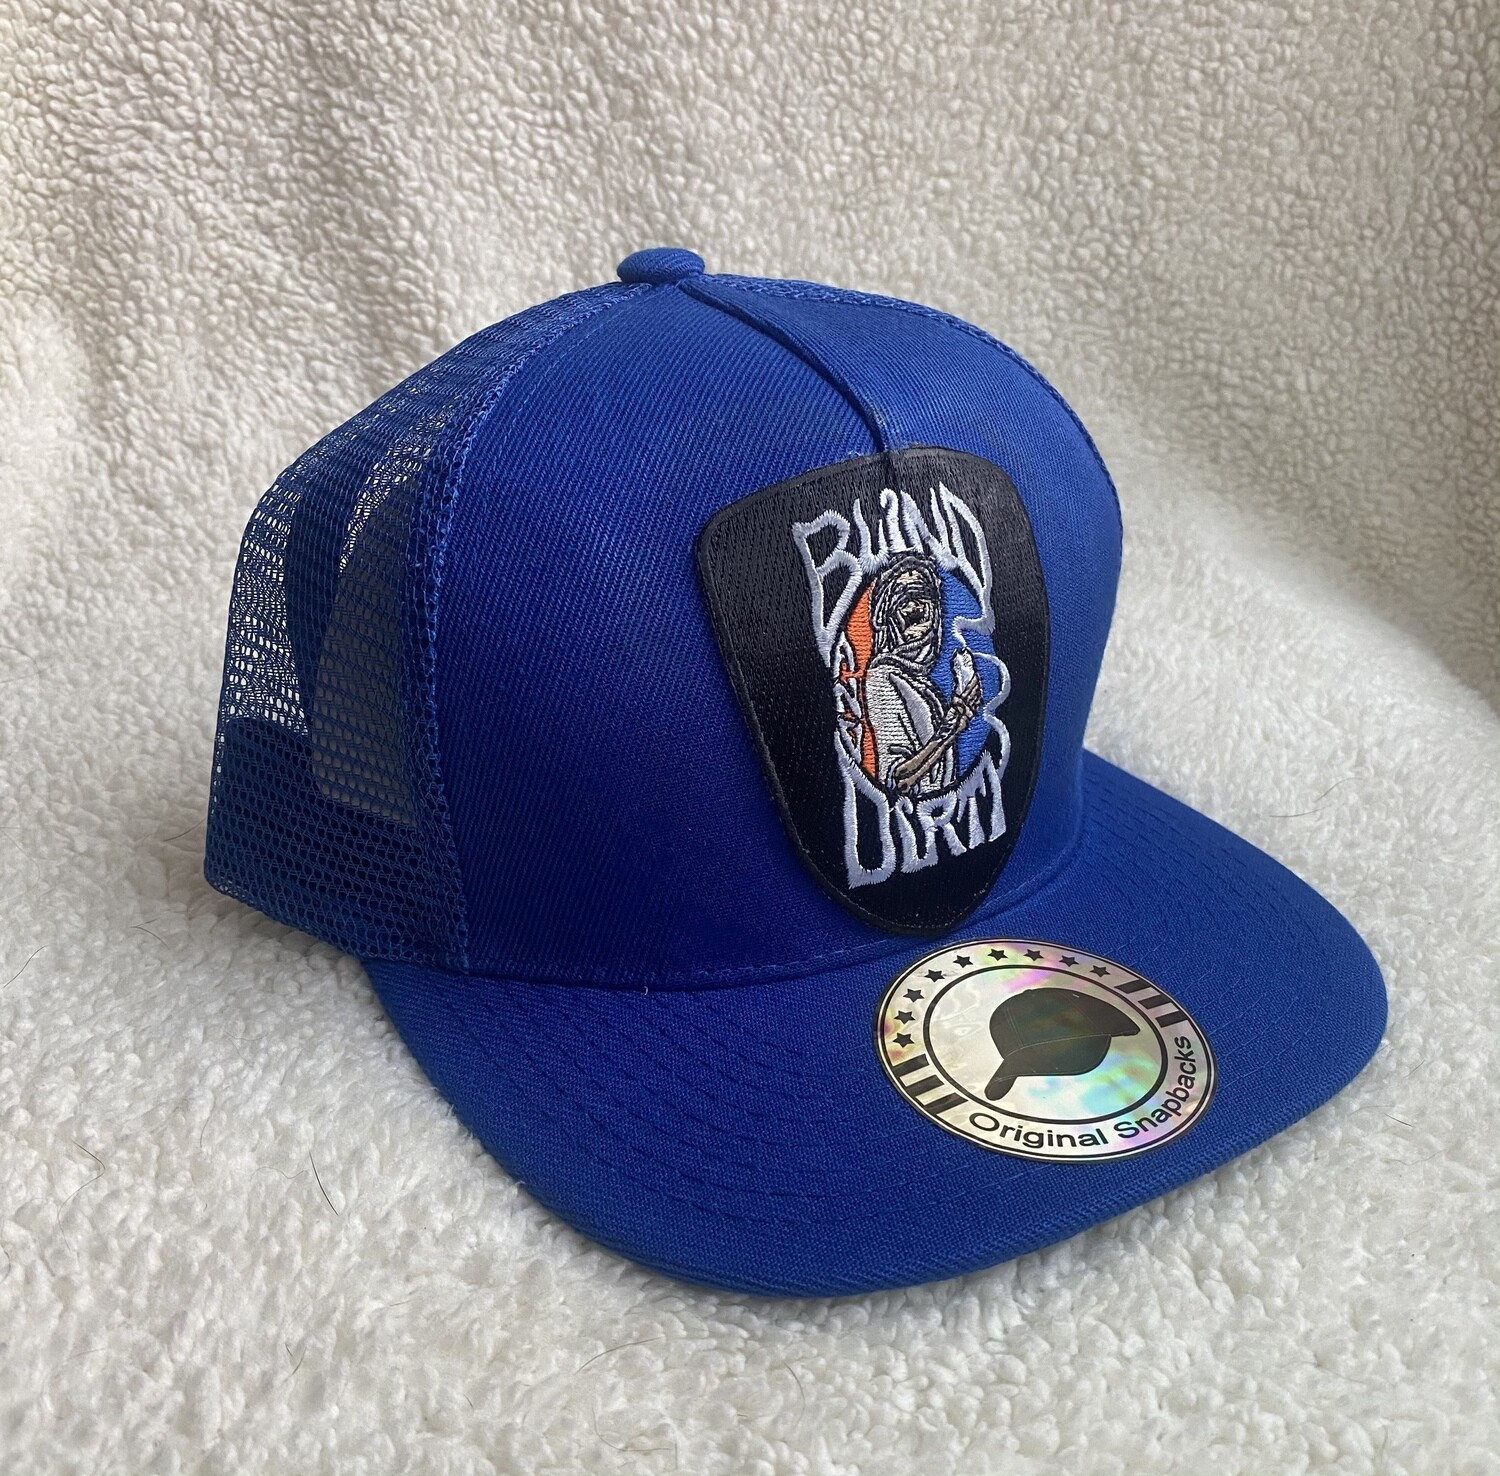 Trucker hat with custom embroidered patch, royal blue